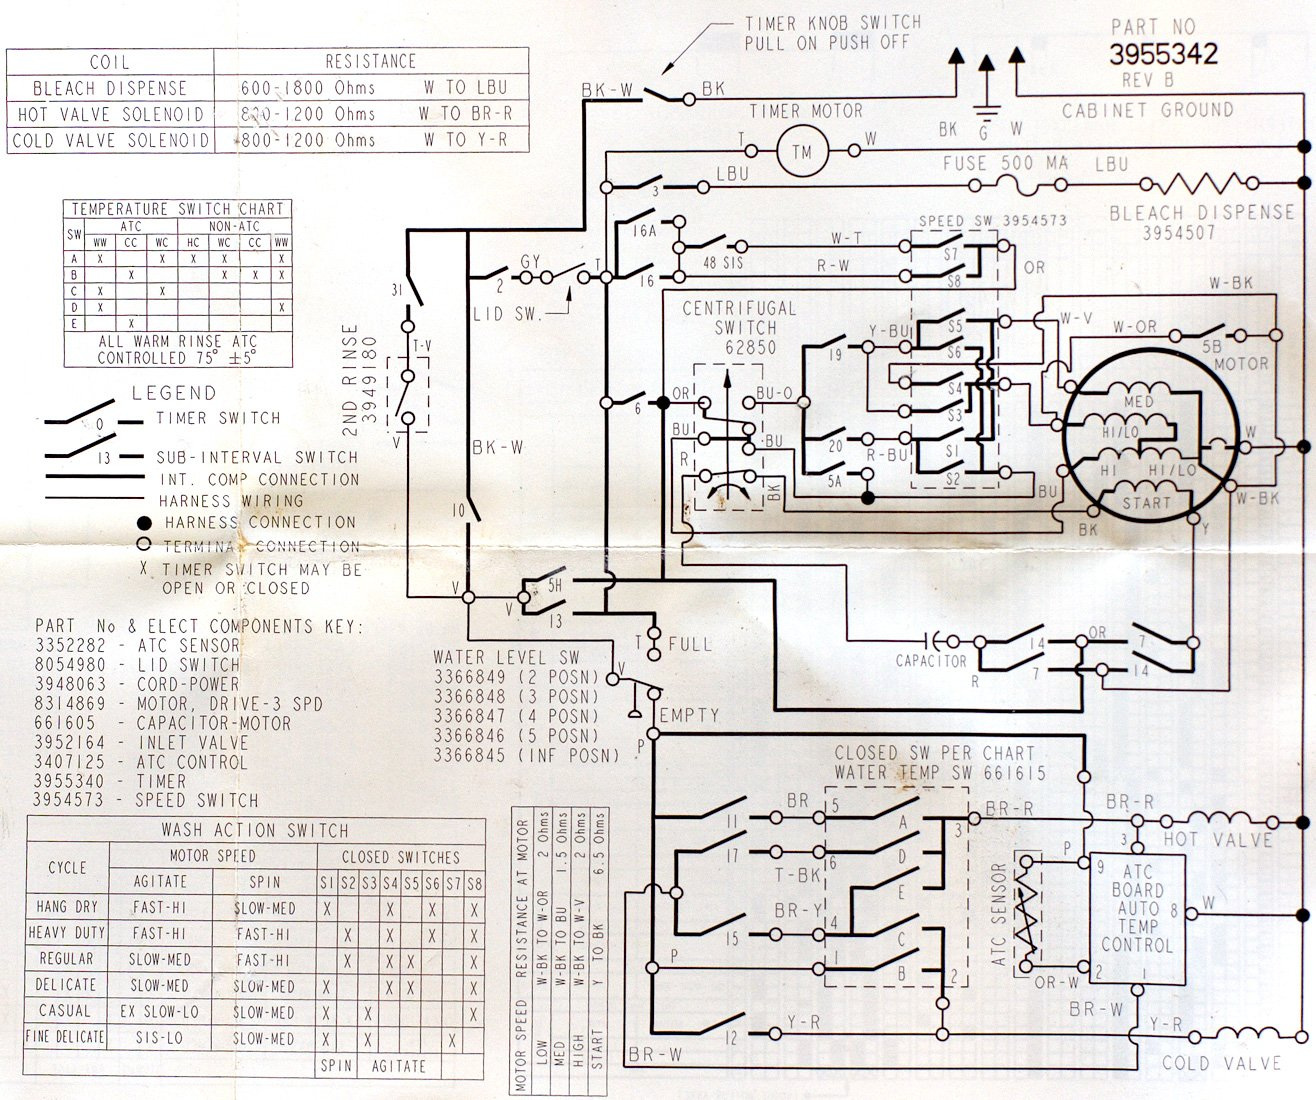 I have a 3 sd motor out of a Kenmore washing machine. I ... Kenmore Washing Machine Motor Wiring Diagram on kenmore washing machine clutch, washing machine parts diagram, kenmore washing machine exploded view, estate washing machine wiring diagram, whirlpool stove wiring diagram, washing machine motor wiring diagram, samsung washing machine wiring diagram, kenmore washing machine repair, kenmore washing machine parts, admiral washing machine wiring diagram, kenmore washing machine installation, bosch washing machine wiring diagram, kitchenaid washing machine wiring diagram, kenmore washing machine motor, maytag washing machine wiring diagram, kenmore washing machine timer, kenmore electric dryer diagram, ge washing machine diagram, kenmore washing machine user manual, kenmore washing machine brake,